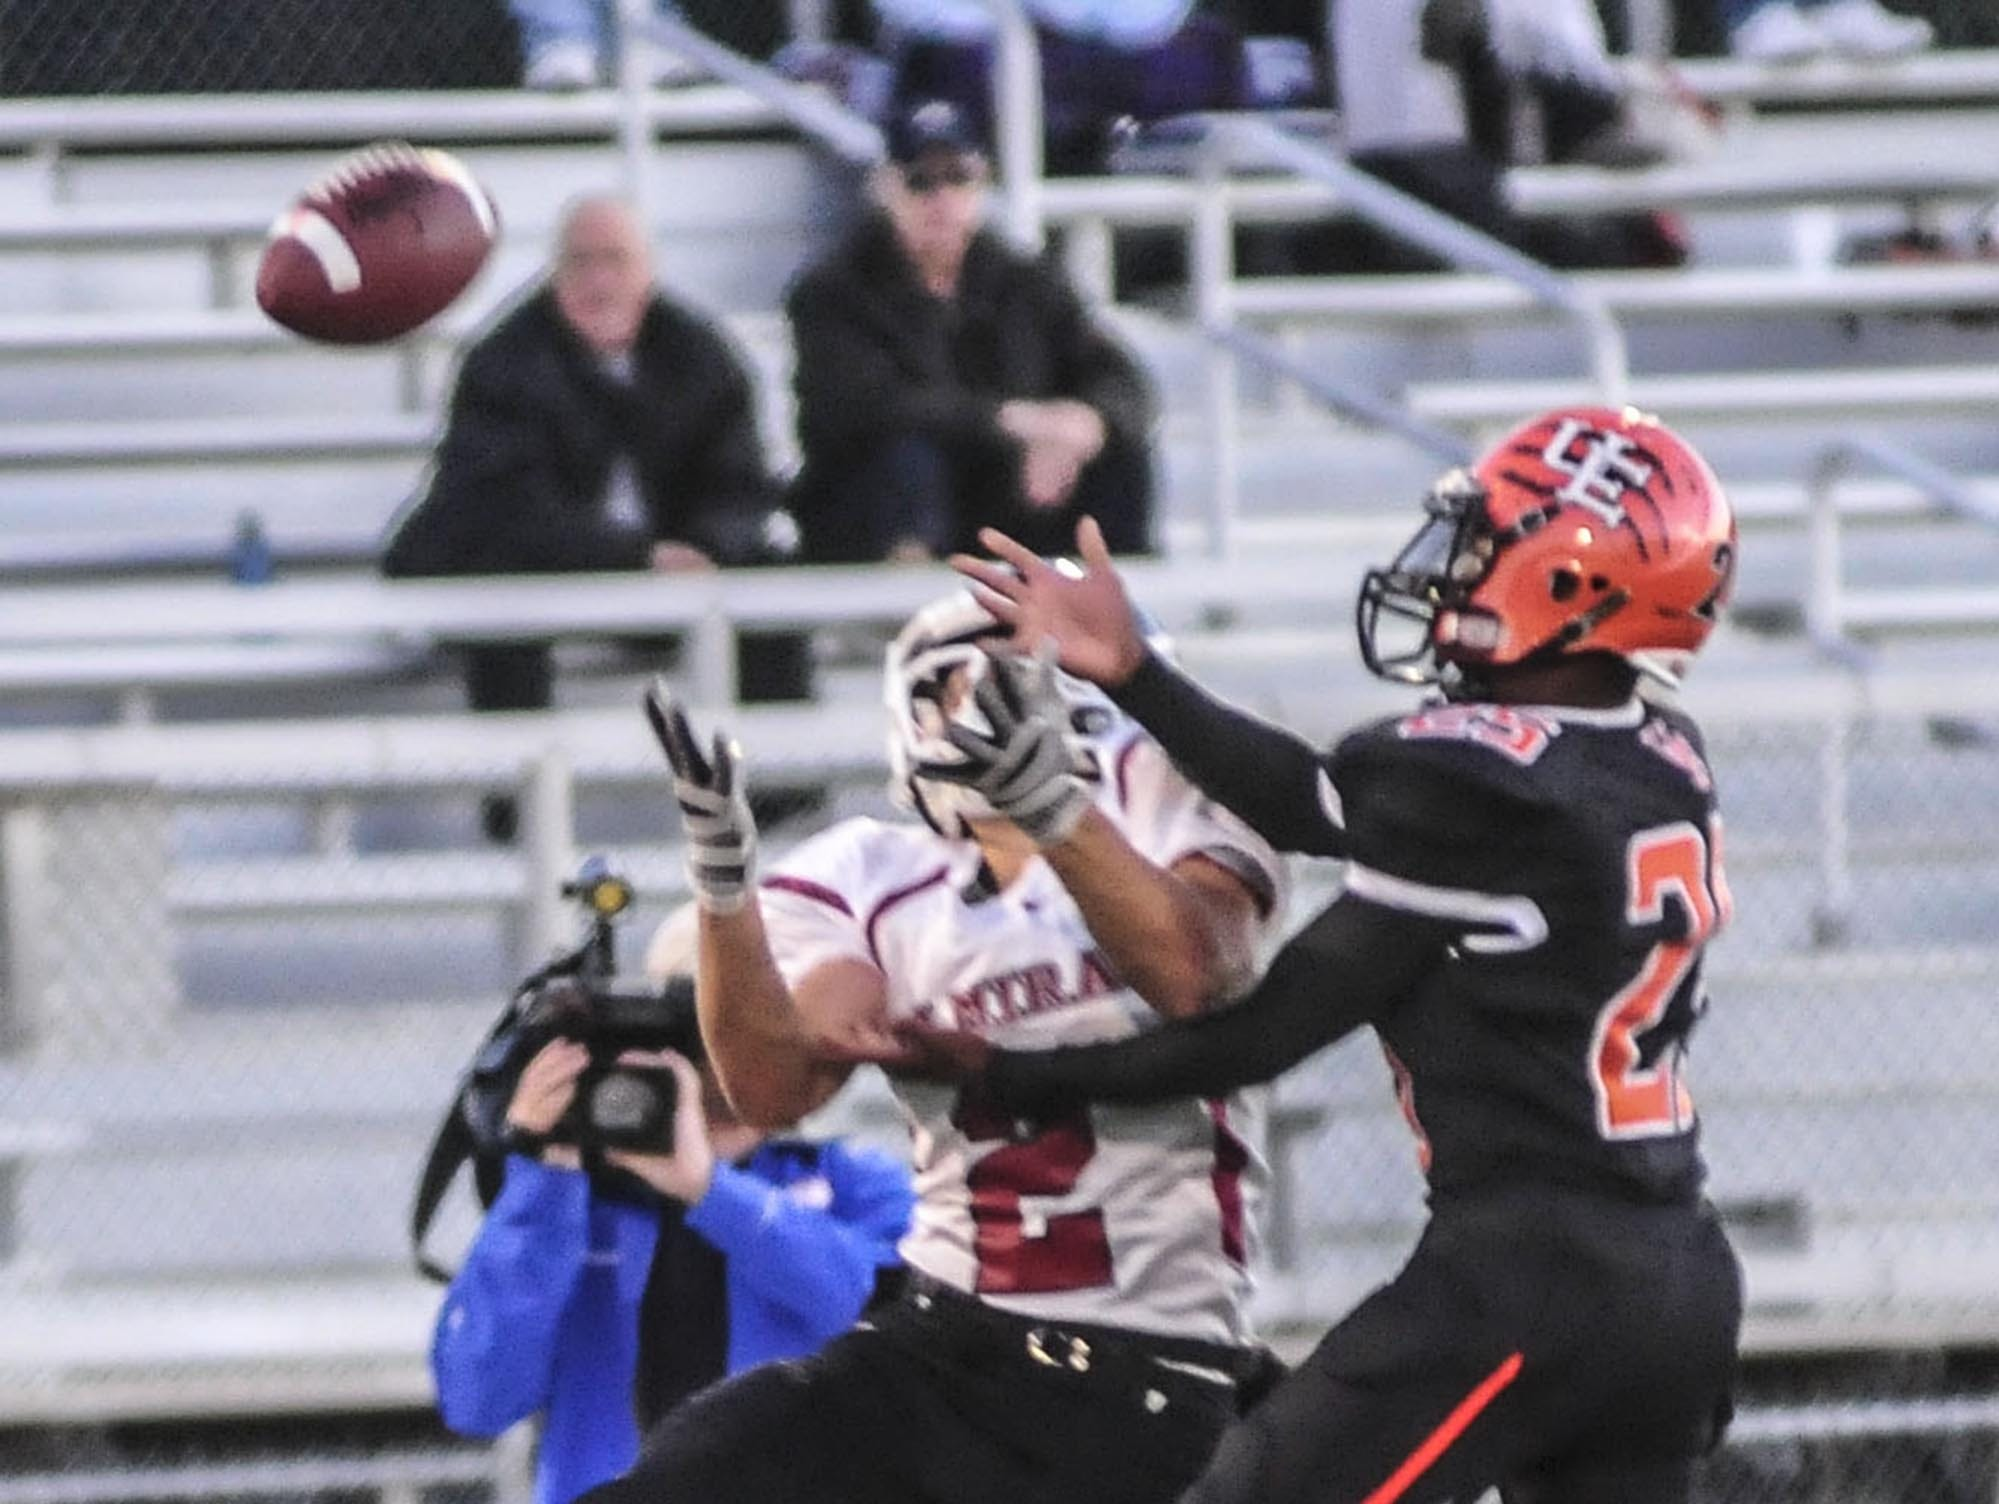 Union-Endicott's Heze Morgan, right, is unable to haul in a pass against Elmira's Jerimiah Brown in a 2013 game at Ty Cobb Stadium.